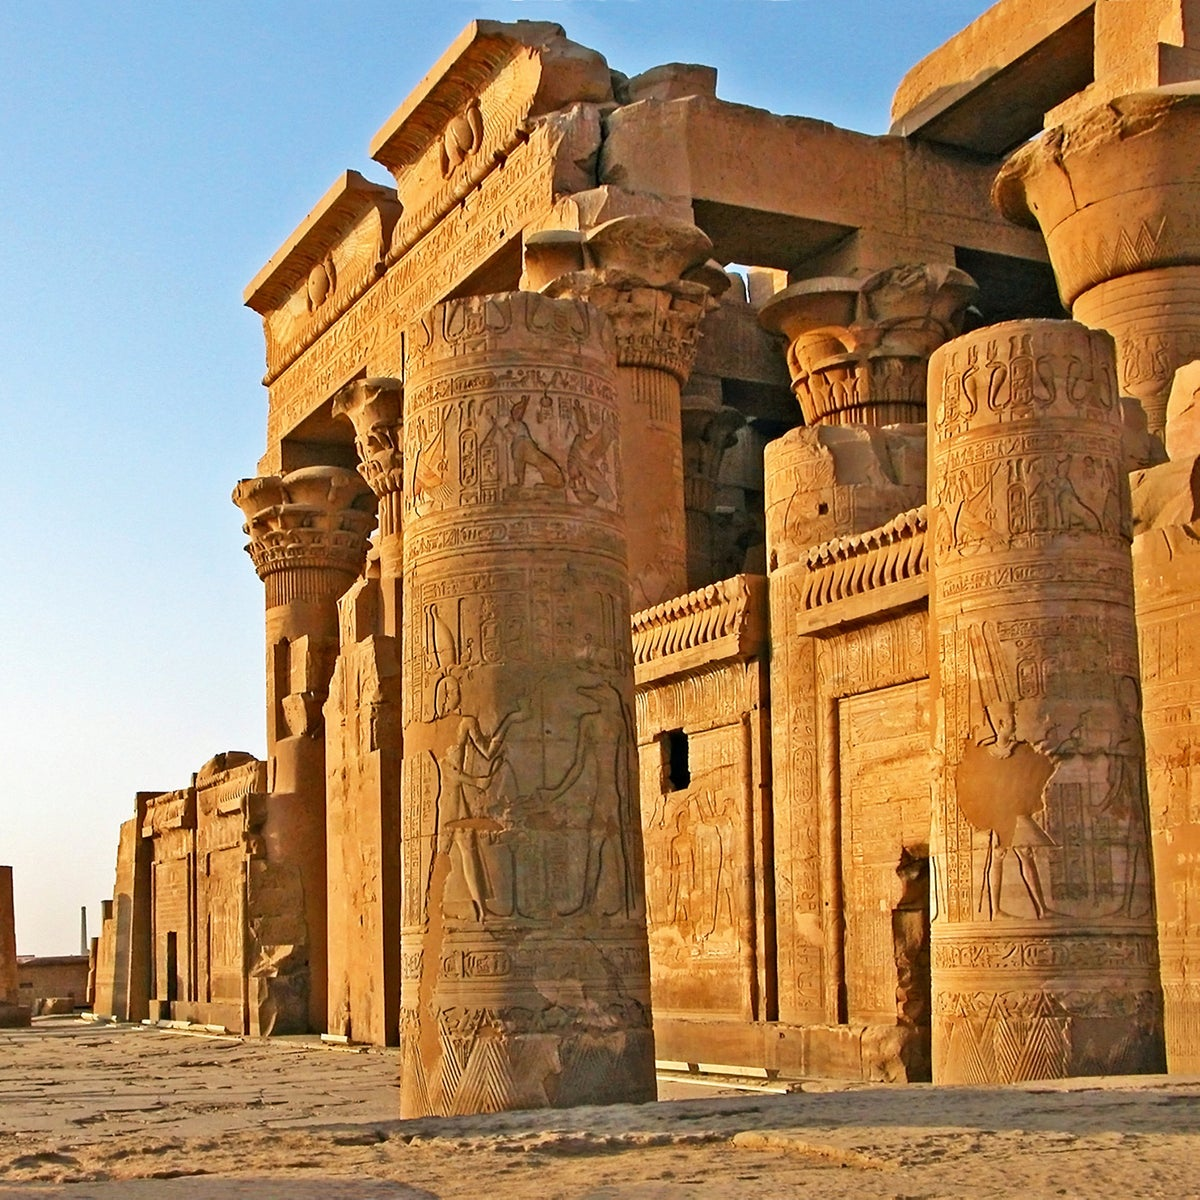 The Temple of Kom Ombo, upper Egypt, a double temple to the crocodile creator of the world, Sobek, and fertility goddess Hathor with Khonsu the moon god